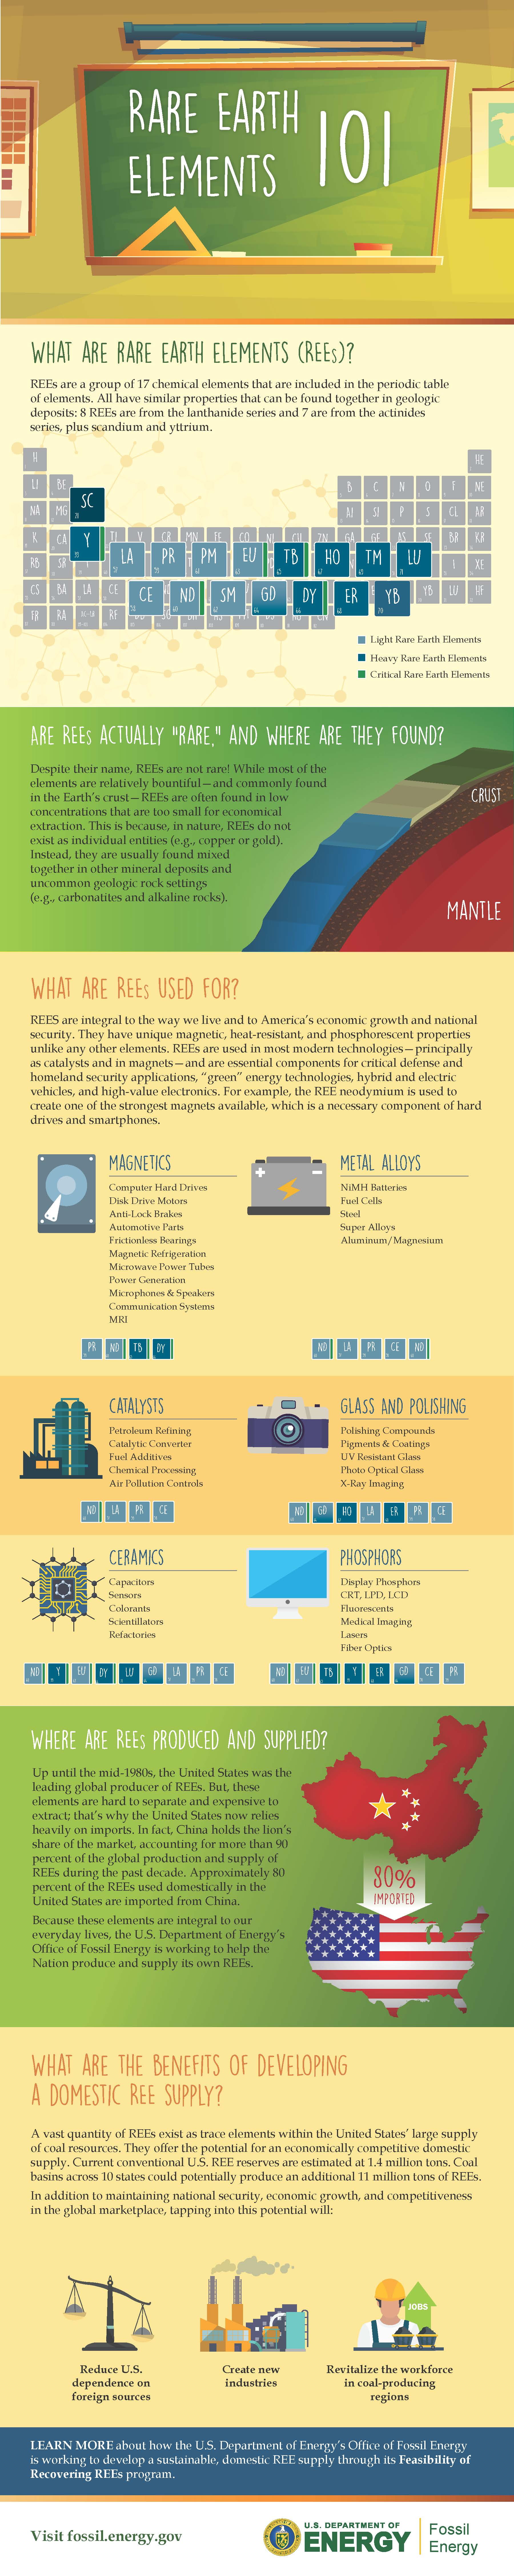 Rare Earth Elements Infographic